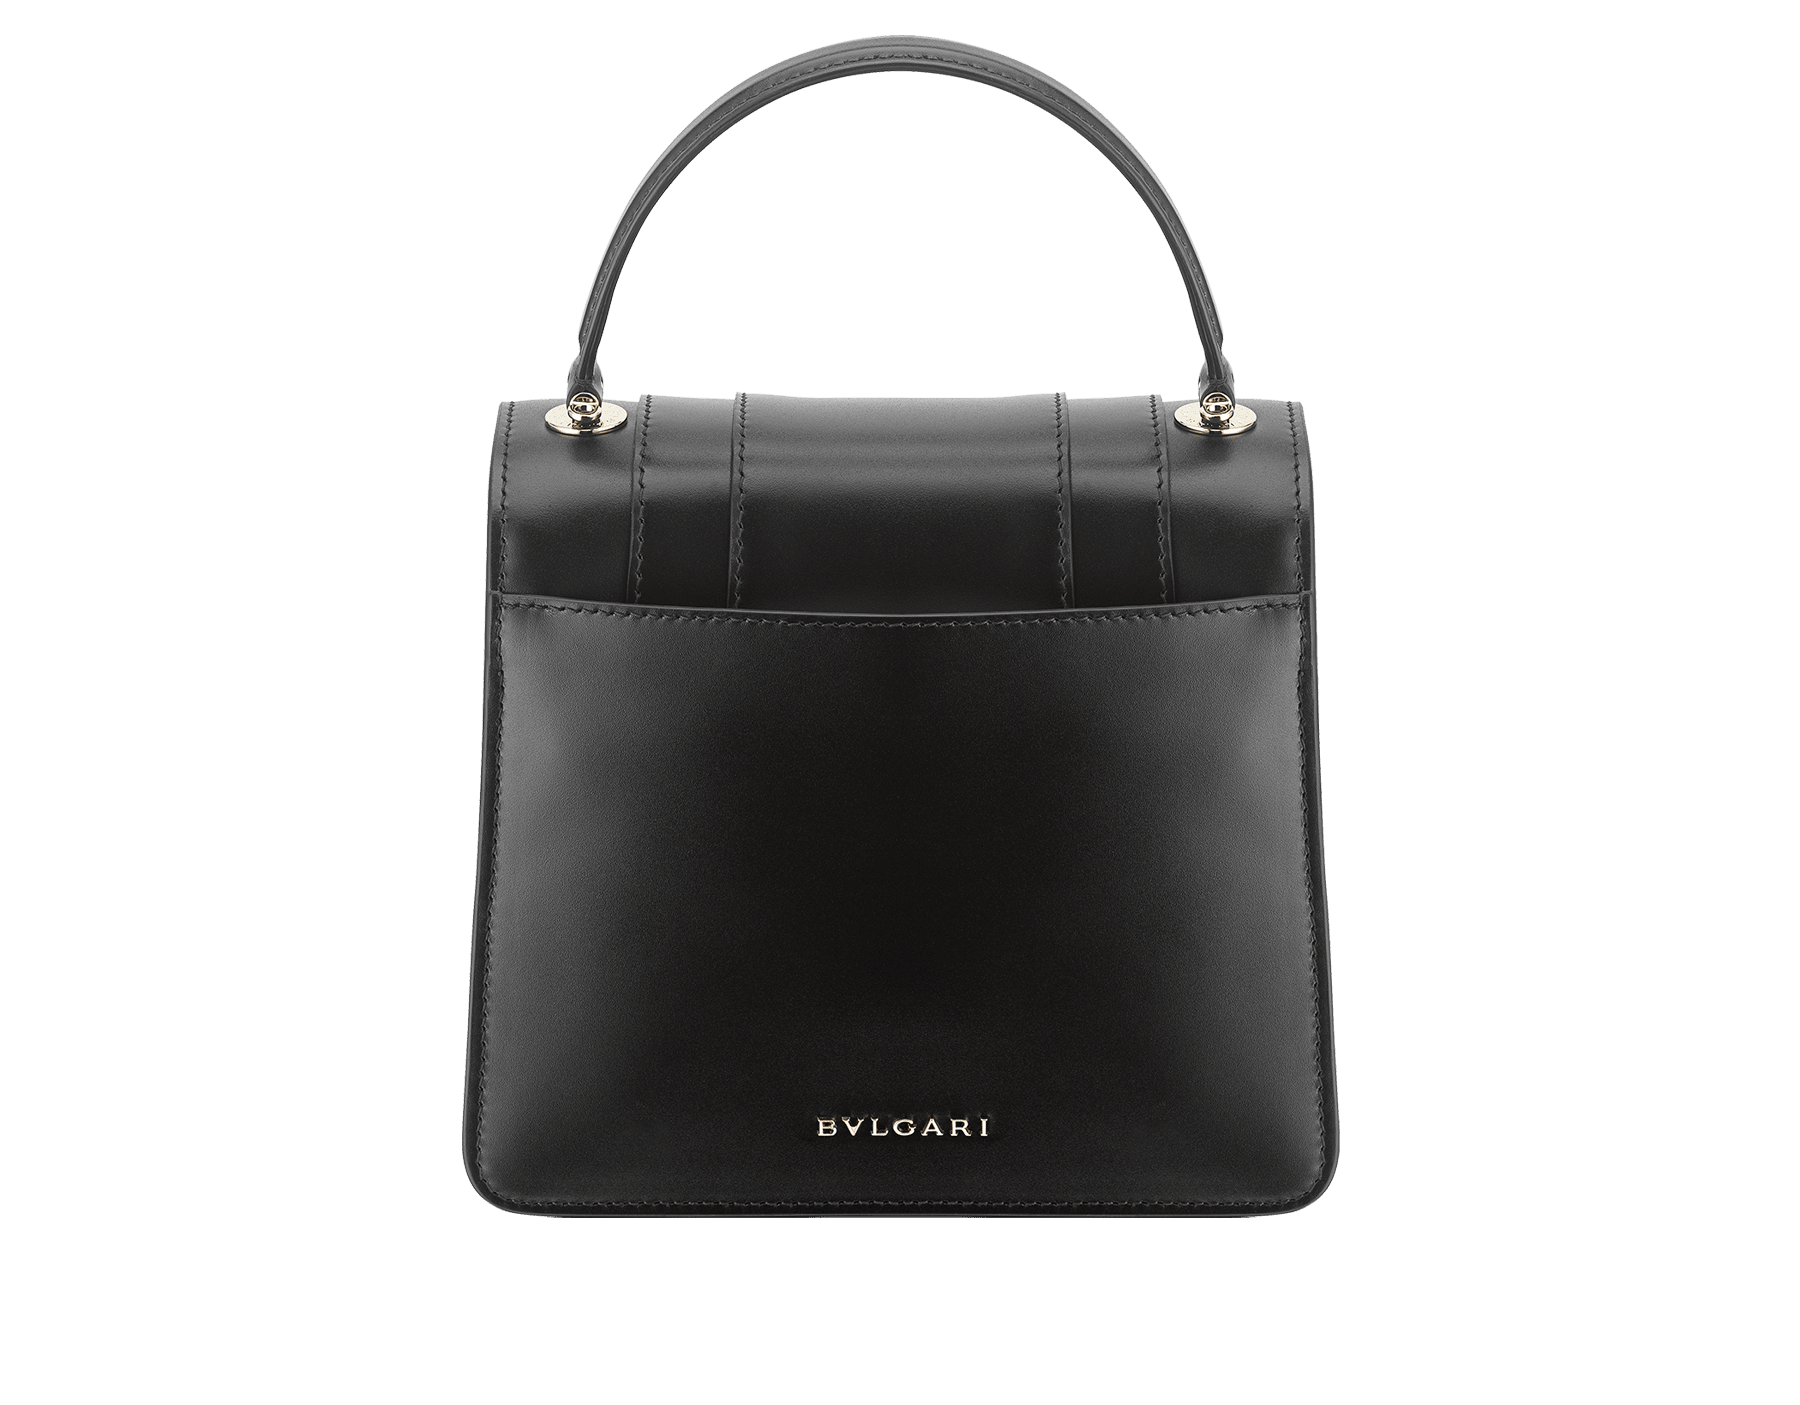 """""""Serpenti Forever"""" top-handle bag in black calfskin with emerald-green grosgrain inner lining. Iconic snakehead closure in light gold-plated brass embellished with black and agate-white enamel and green malachite eyes 1122-CLa image 3"""